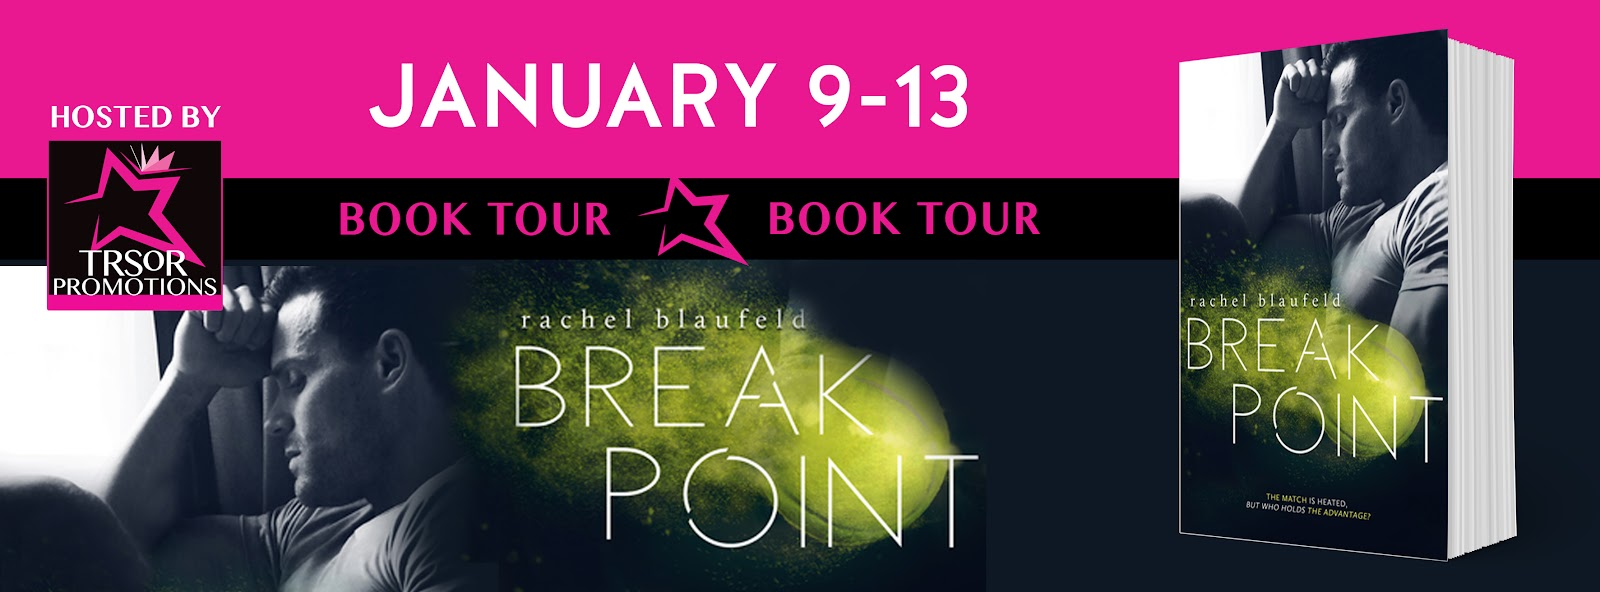 BREAK_POINT_BOOK_TOUR.jpg